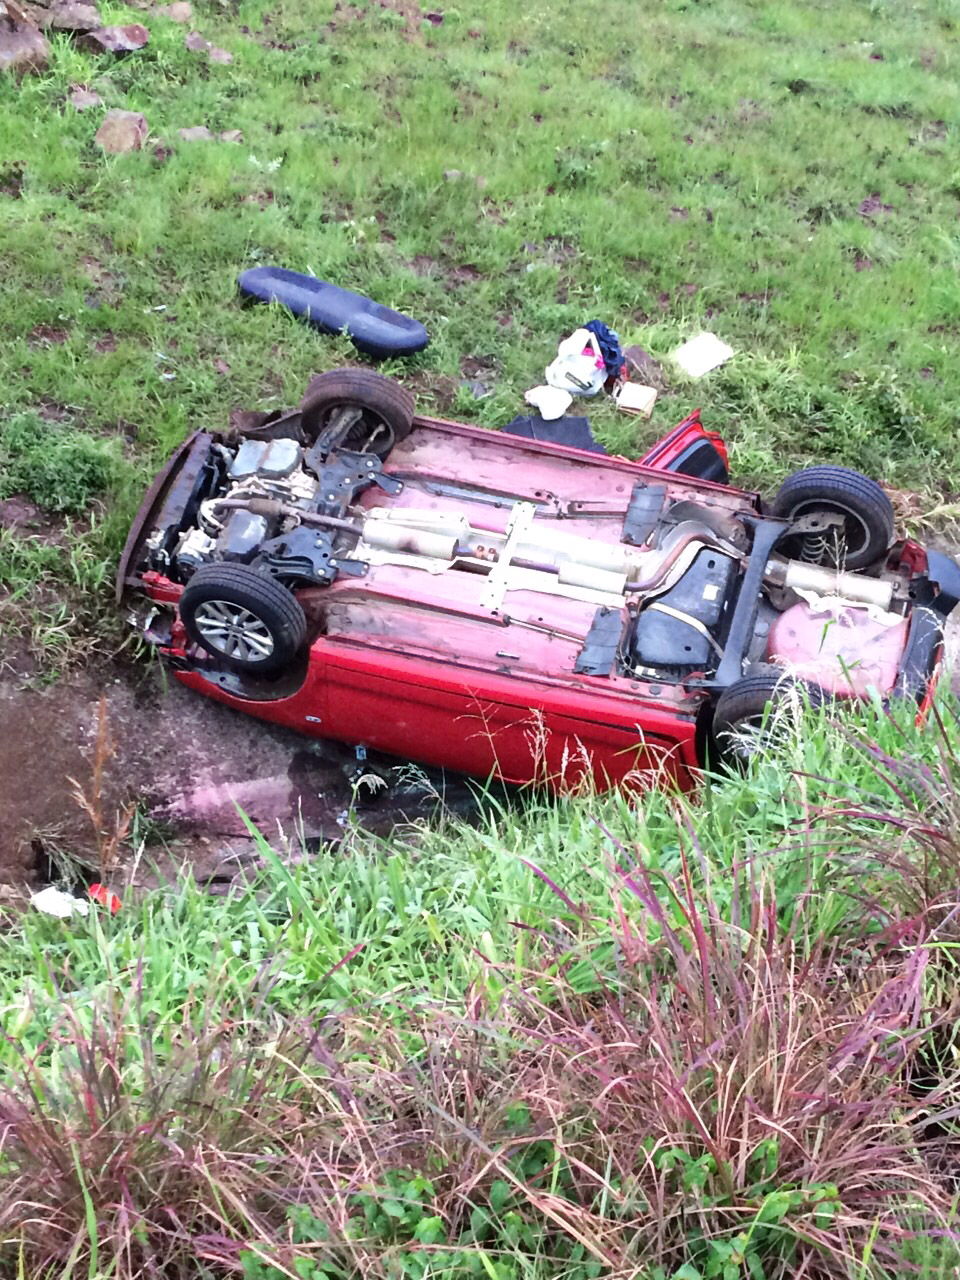 Ballito N2 vehicle rollover leaves two seriously injured